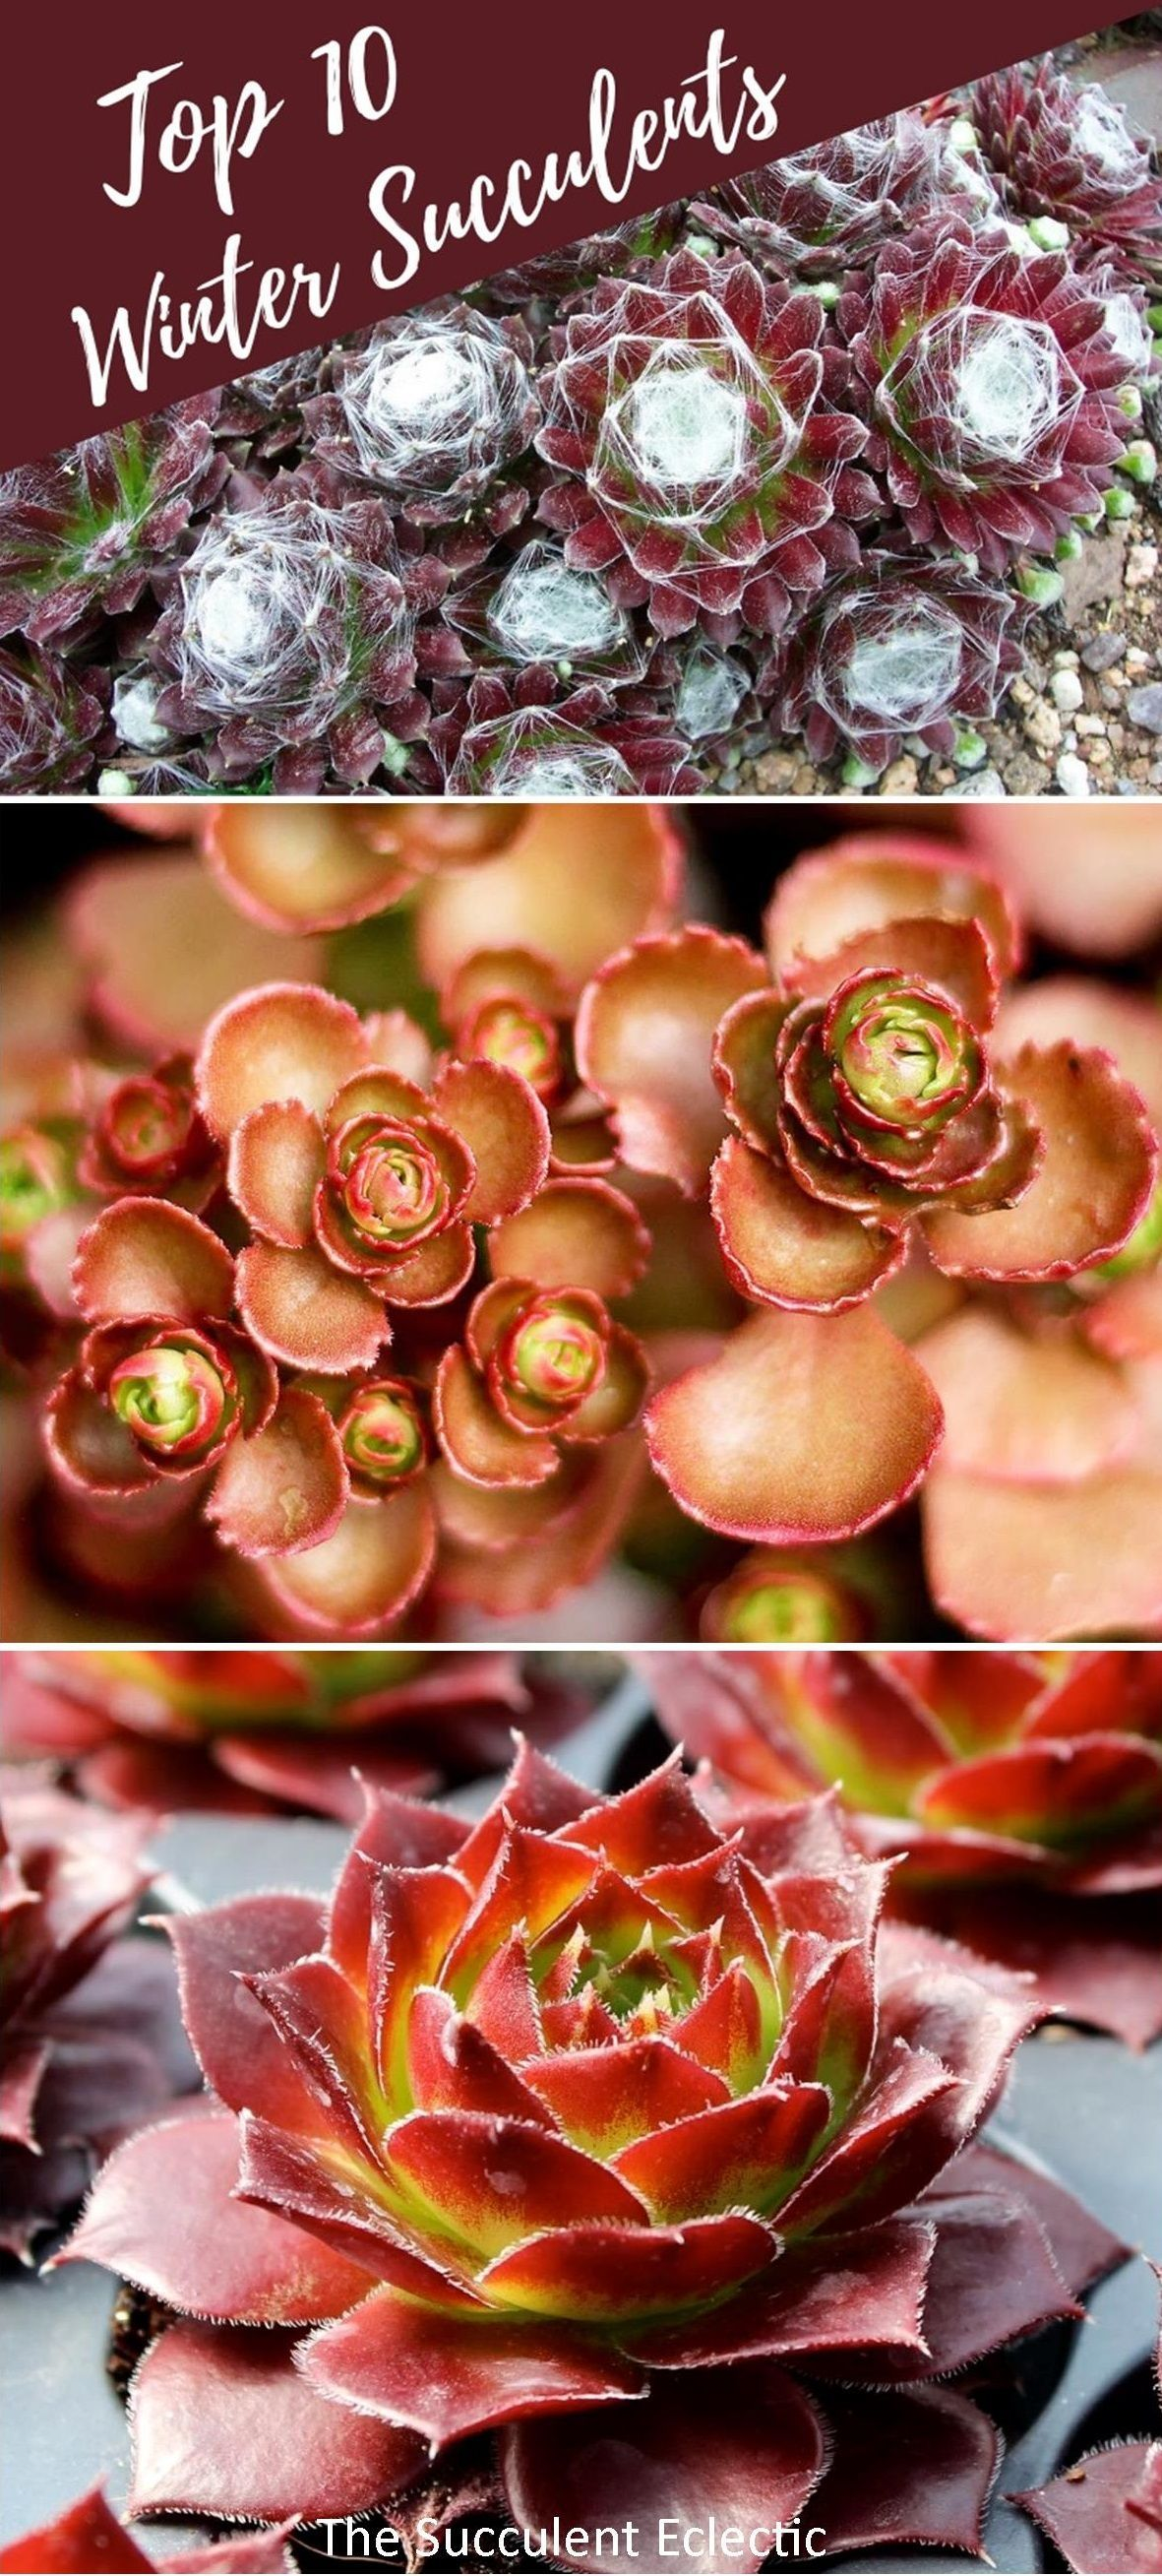 Photo of 10 Best Winter Succulents | The Succulent Eclectic